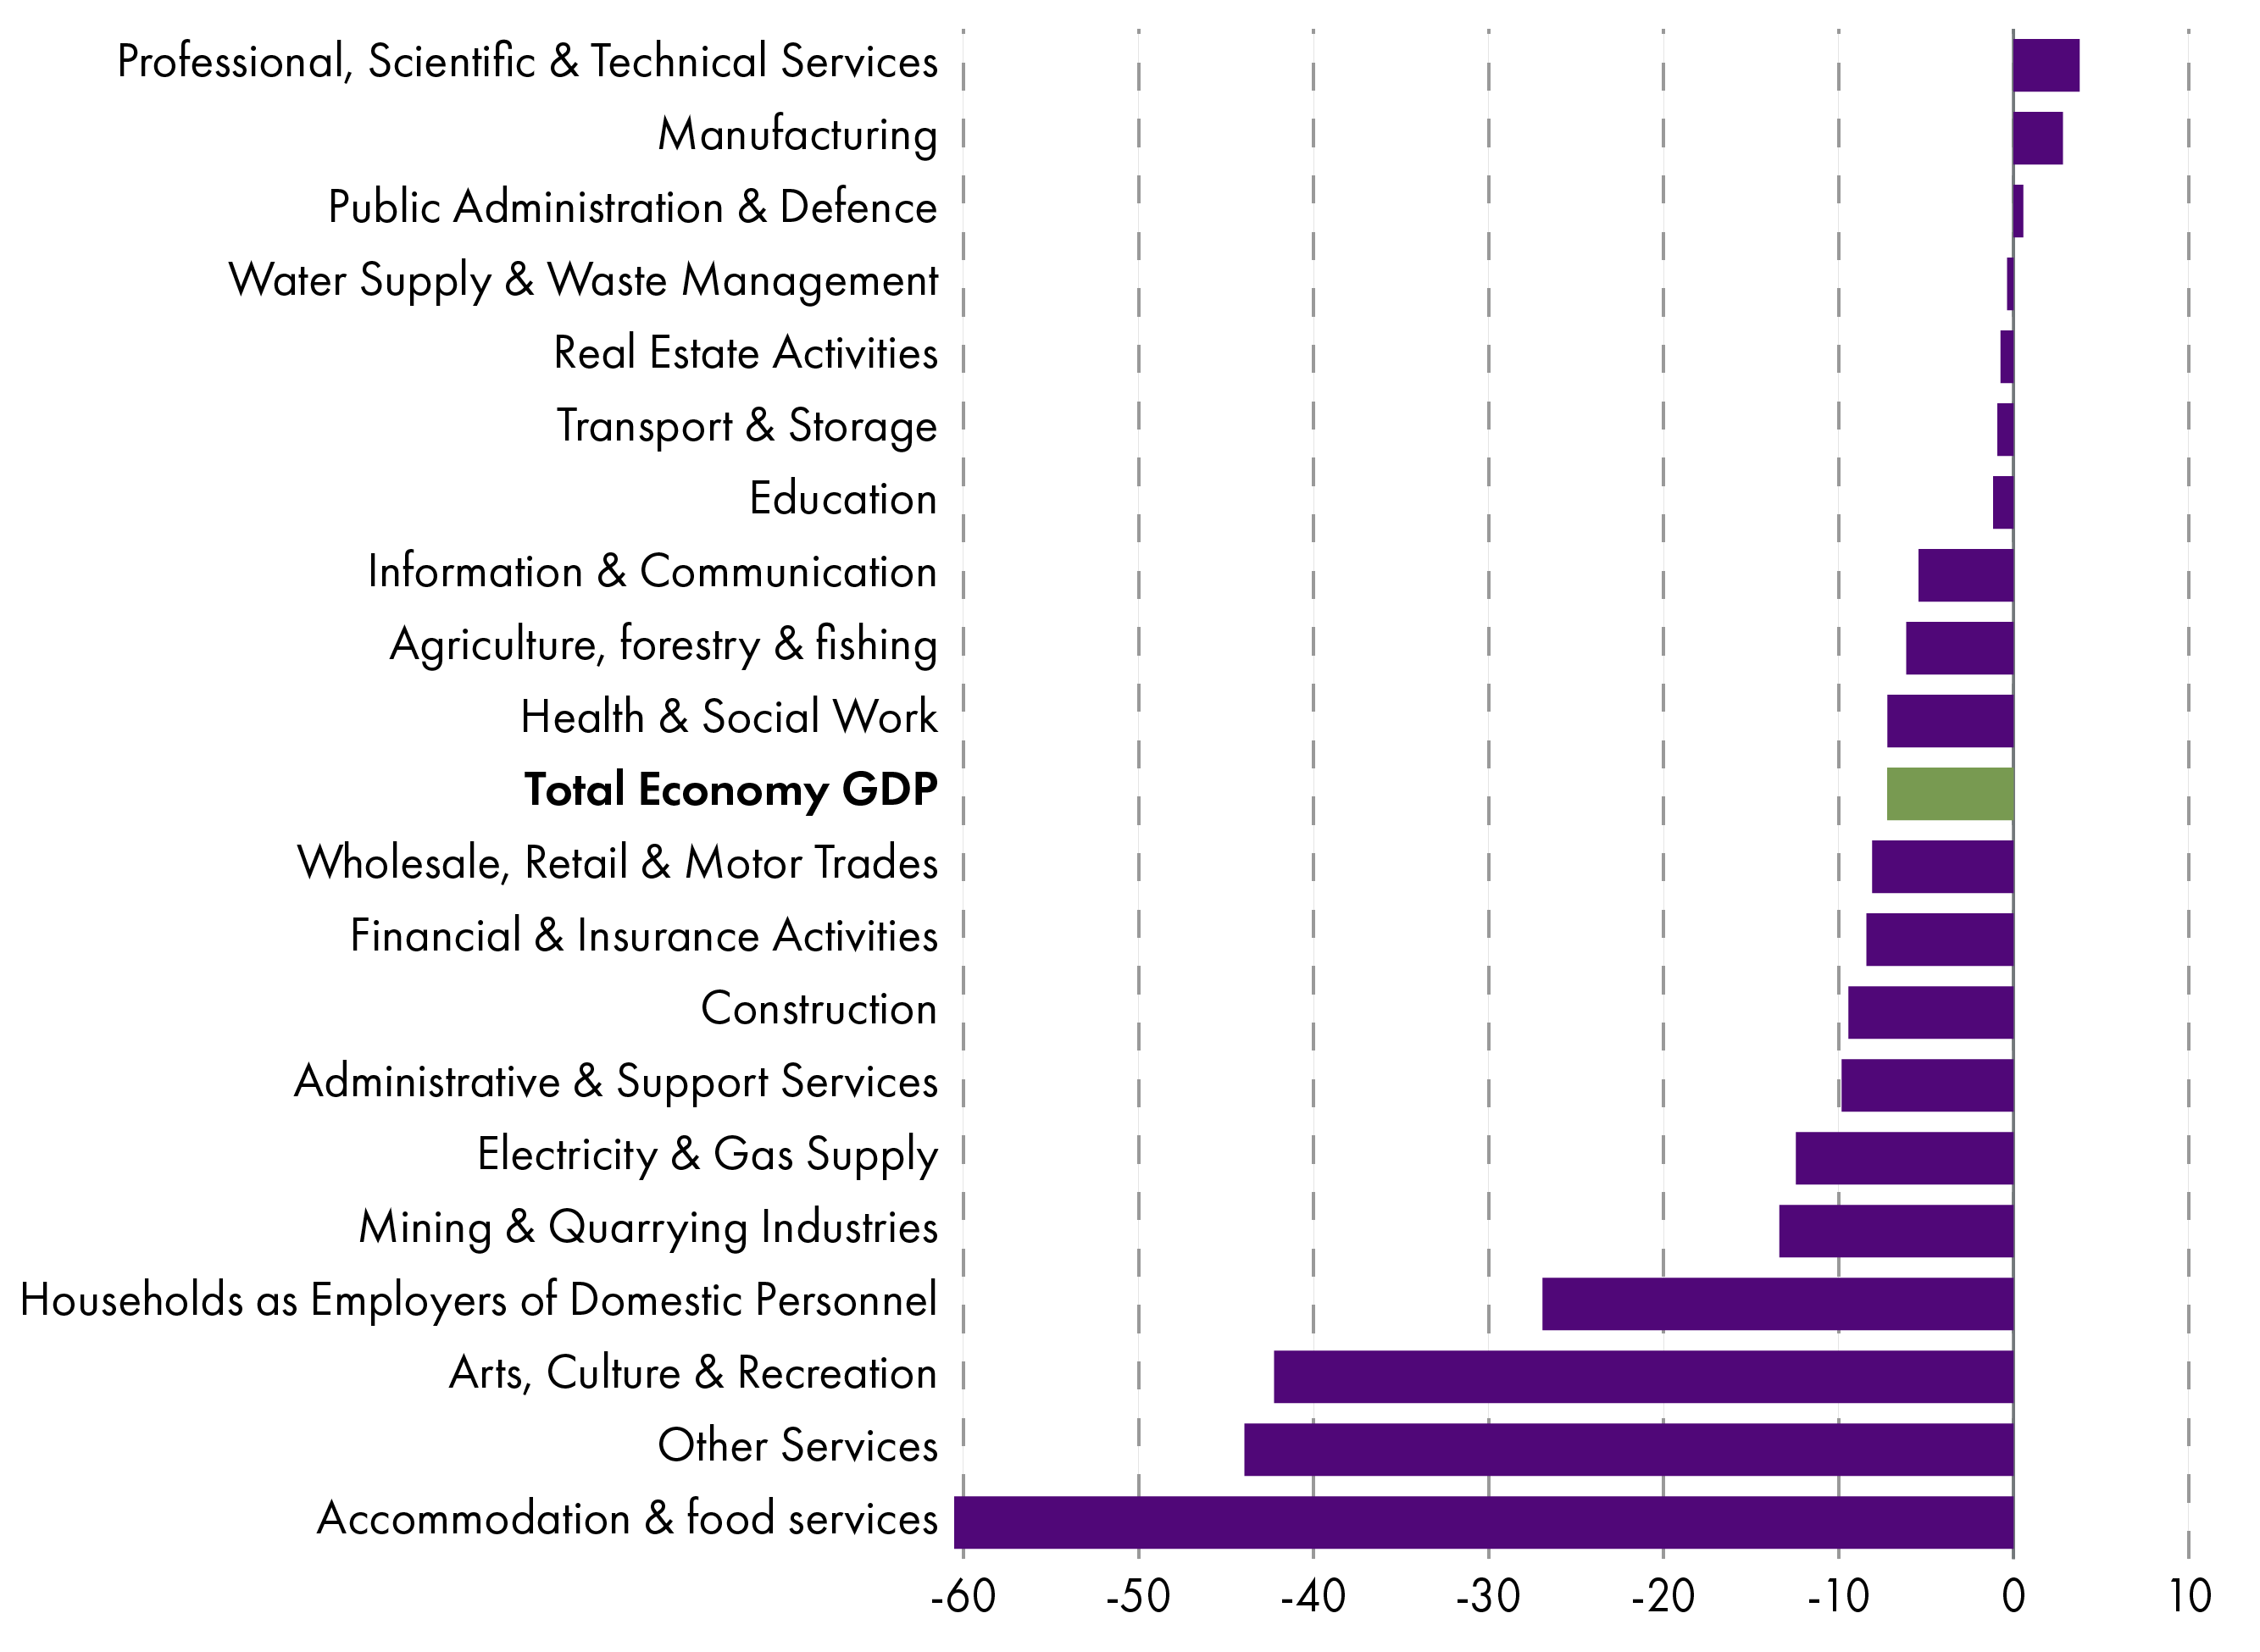 While the whole economy is 7.2% below February 2020 levels of GDP, not all sectors have been impacted equally, as shown in the chart below. Accommodation & food services is by far the worst impacted sector, recording GDP levels over 60% below February 2020 levels in December 2020